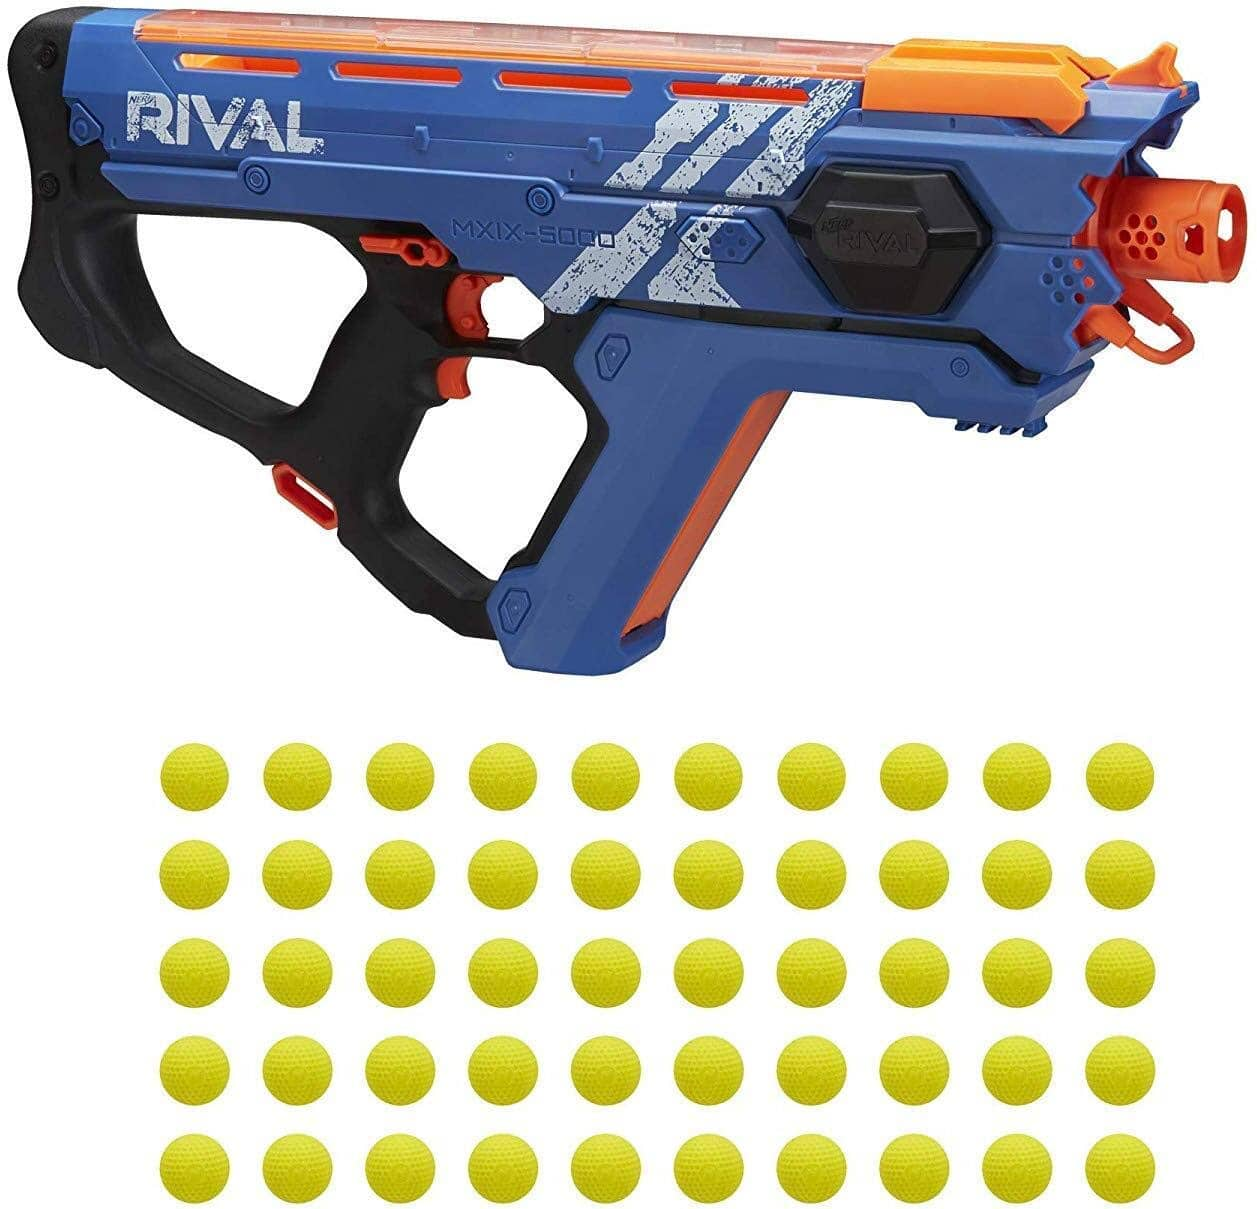 2x Nerf Perses for $120 + tax shipped at Amazon